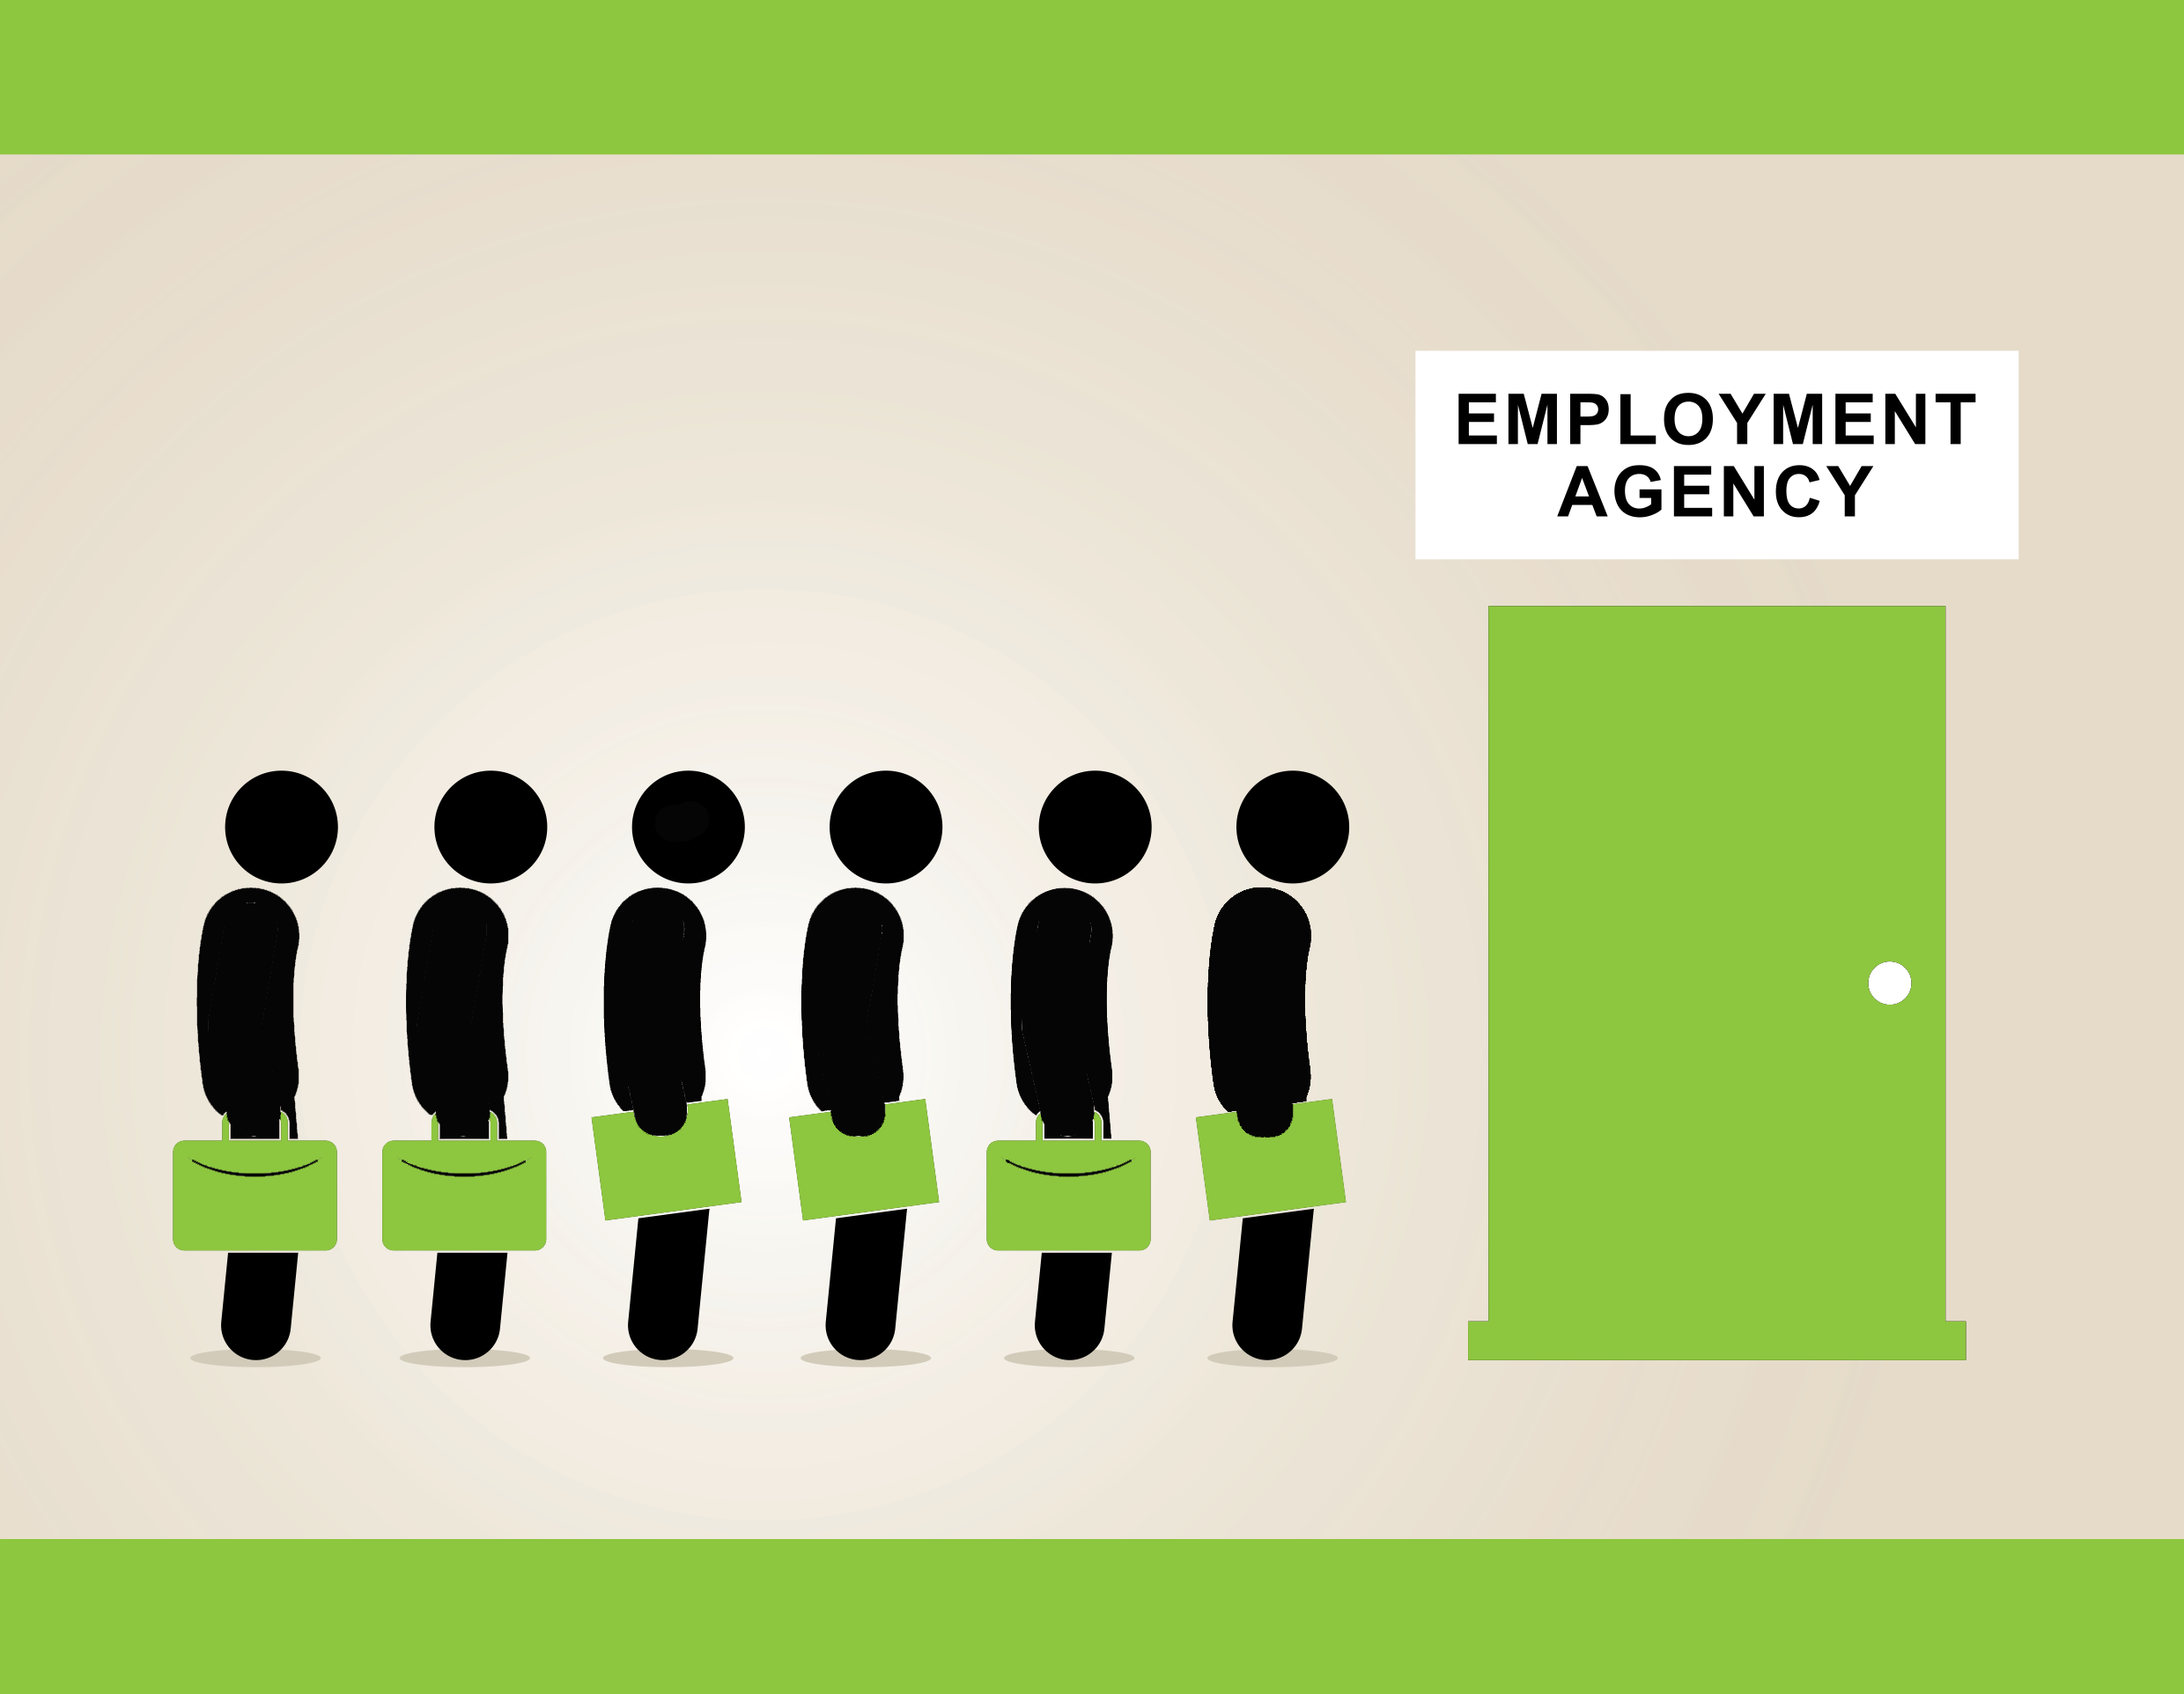 5 things to be considered while choosing manpower and recruitment agency in Nepal